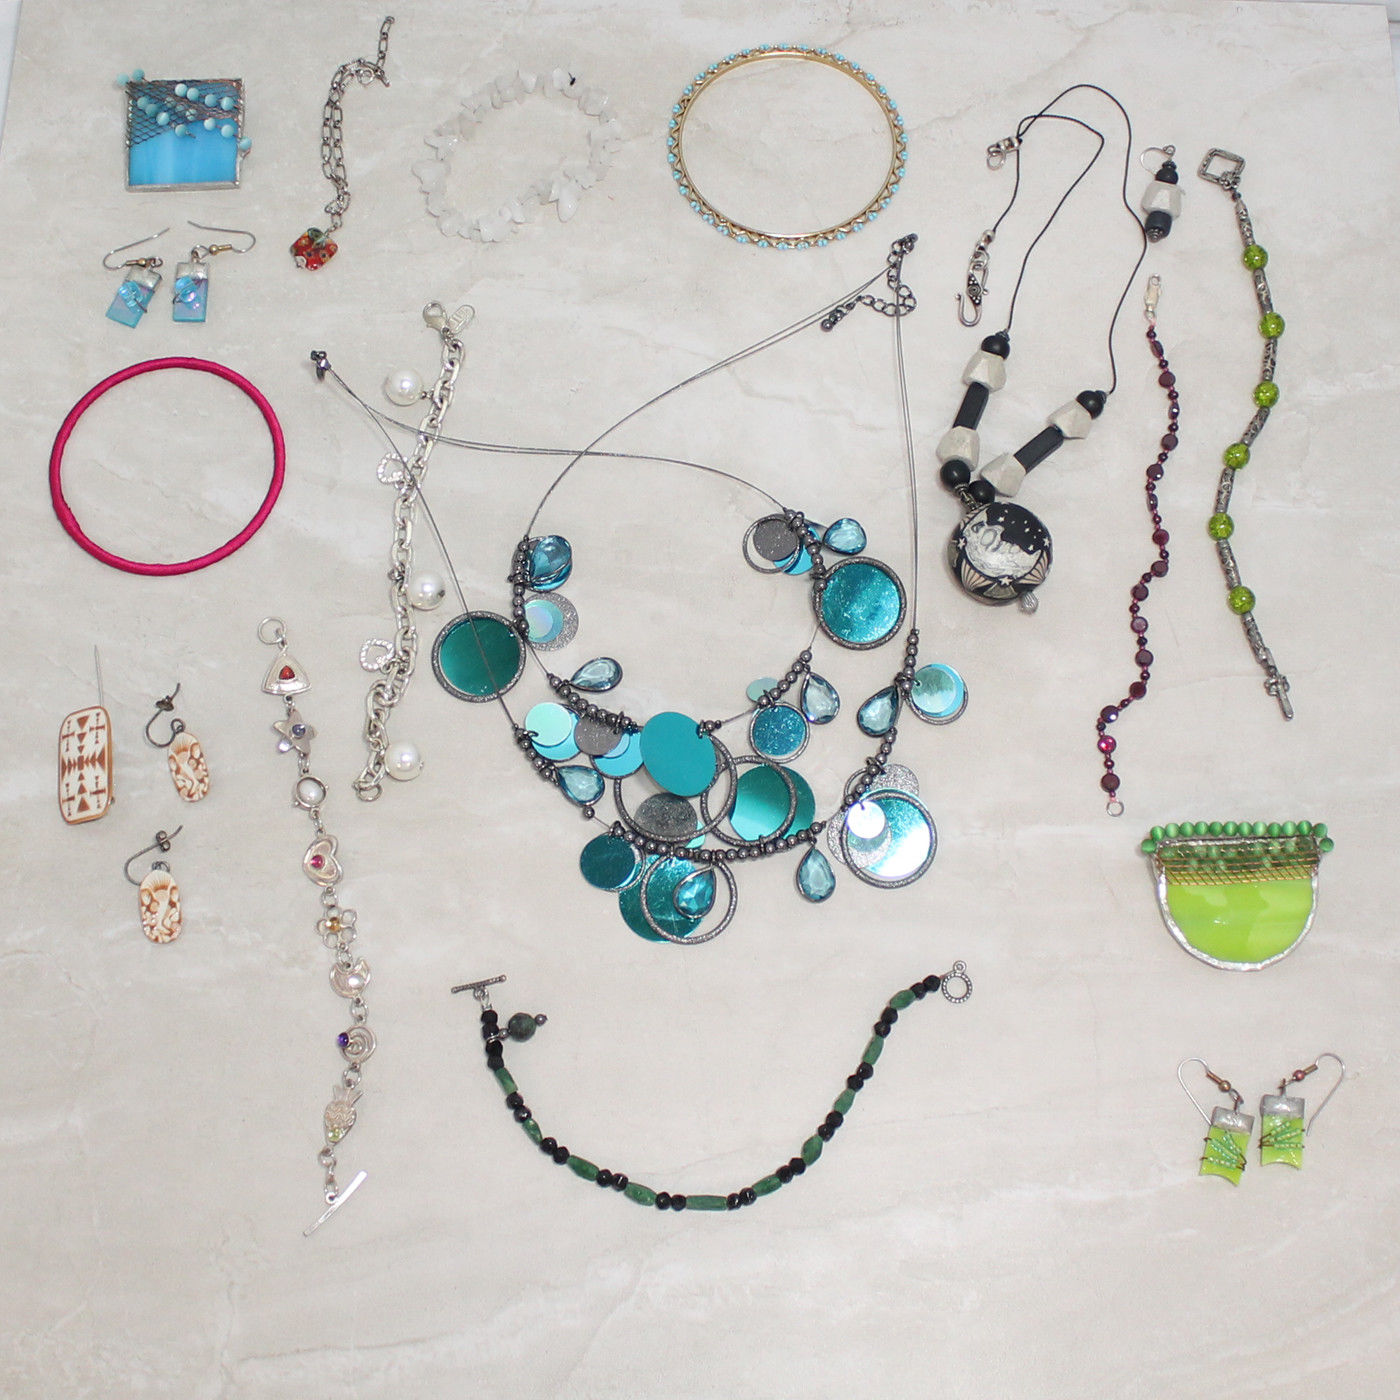 827f43b81222b Details about Lot of random costume jewelry pins earrings etc